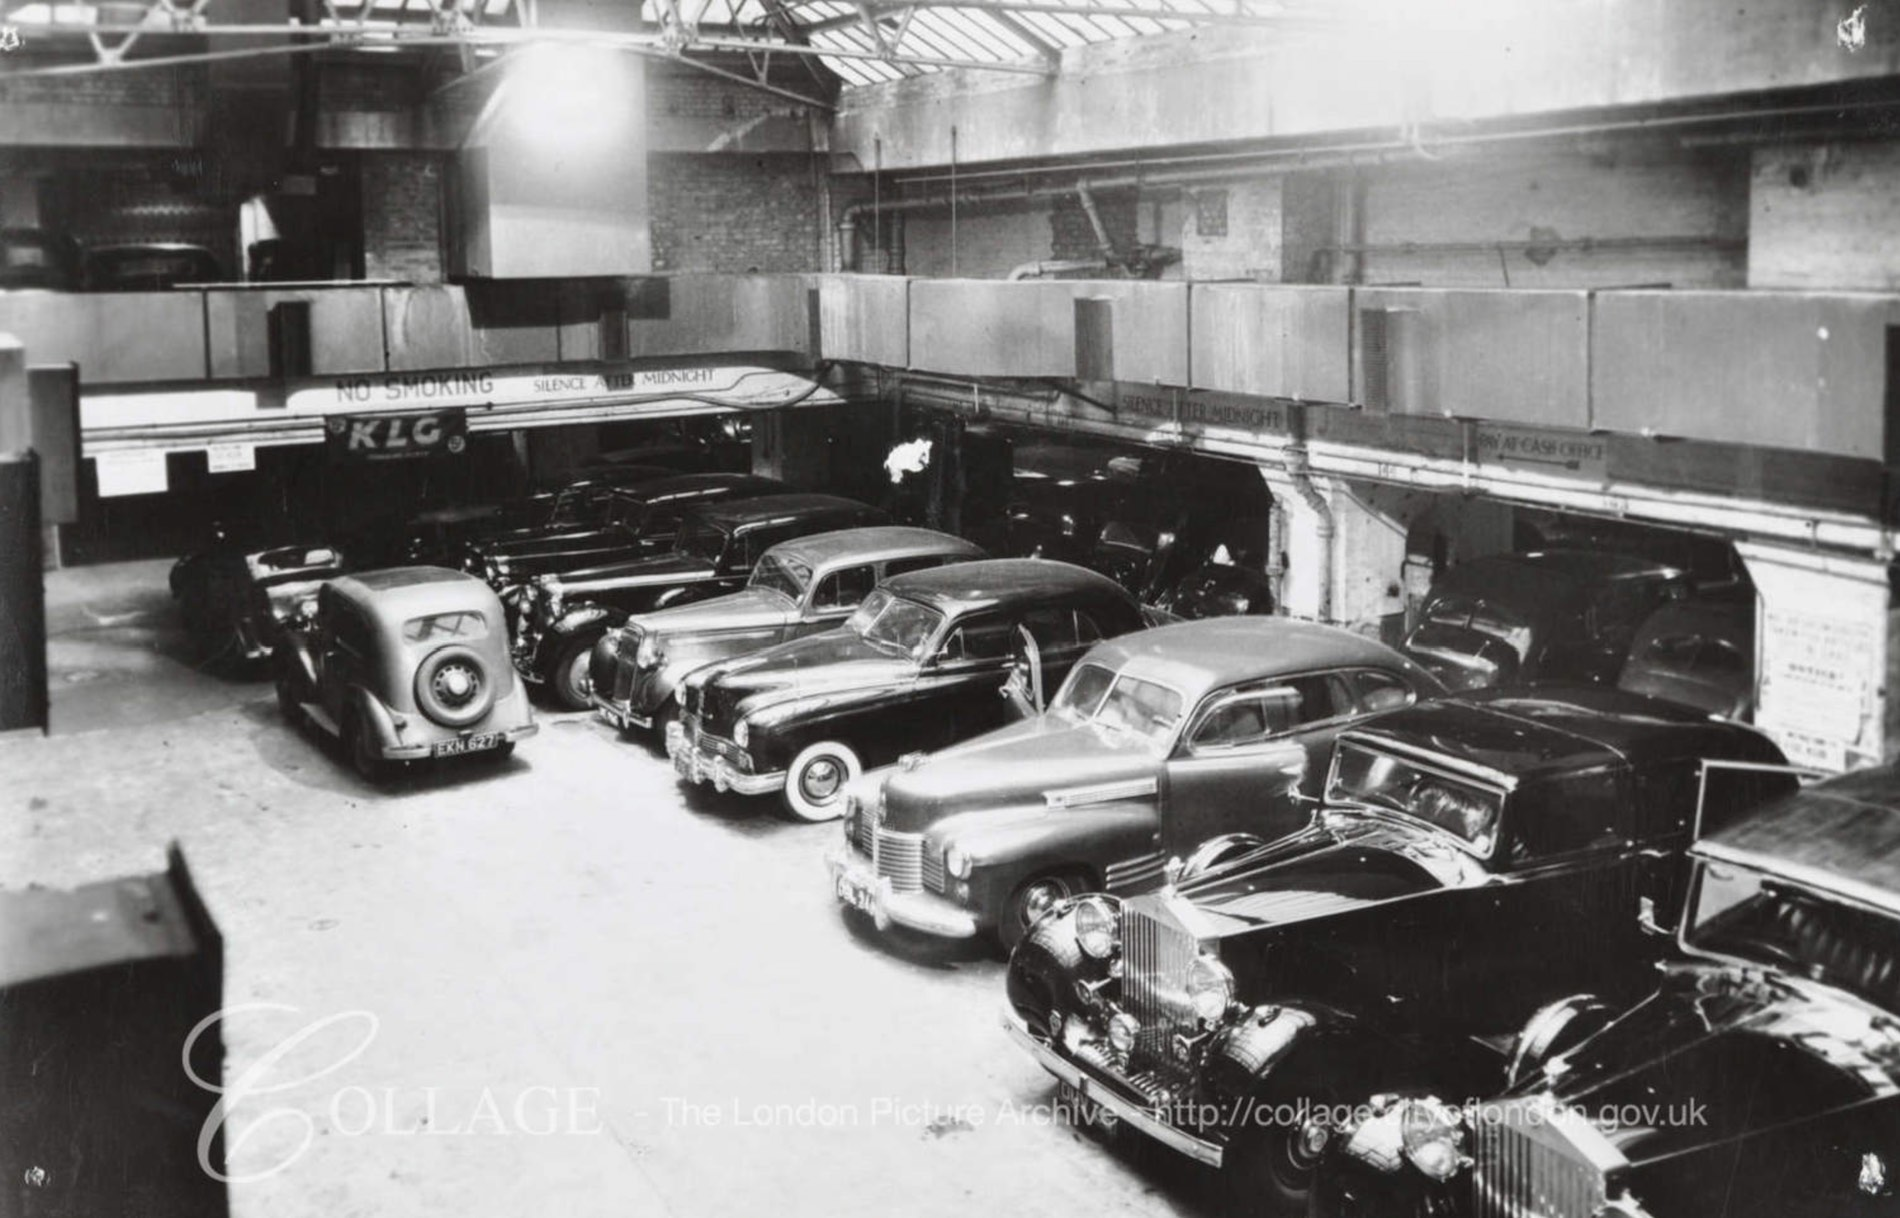 London Collage Archive a treasure trove for classic car fans